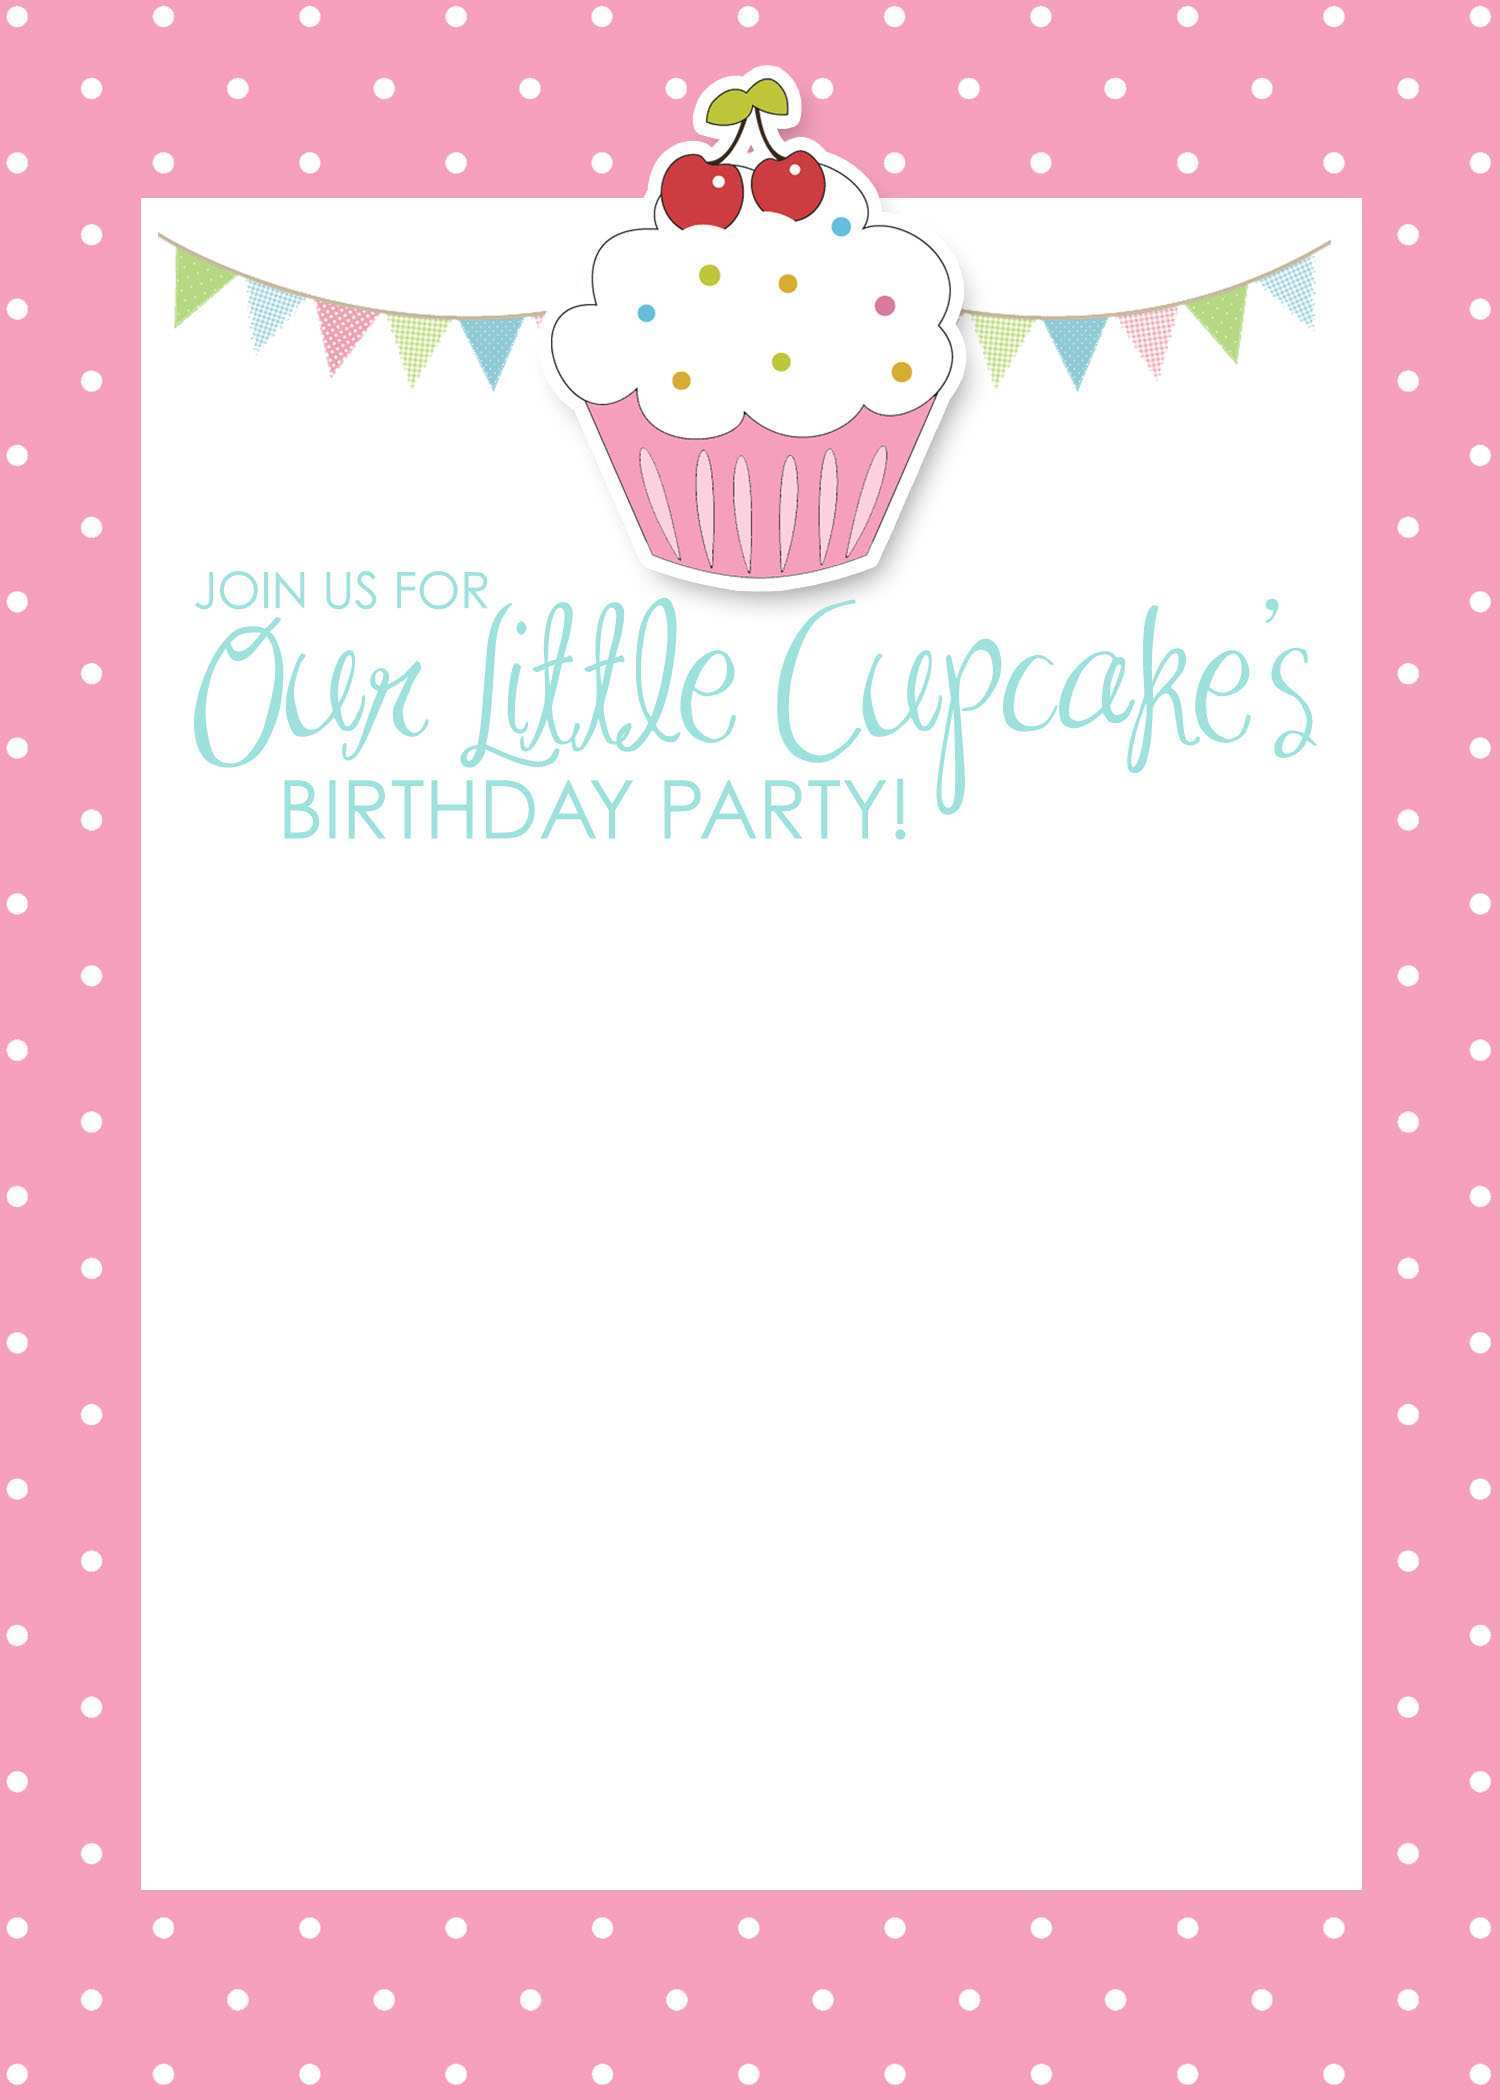 50 Report Birthday Invitation Template For Baby Girl Formating for Birthday Invitation Template For Baby Girl